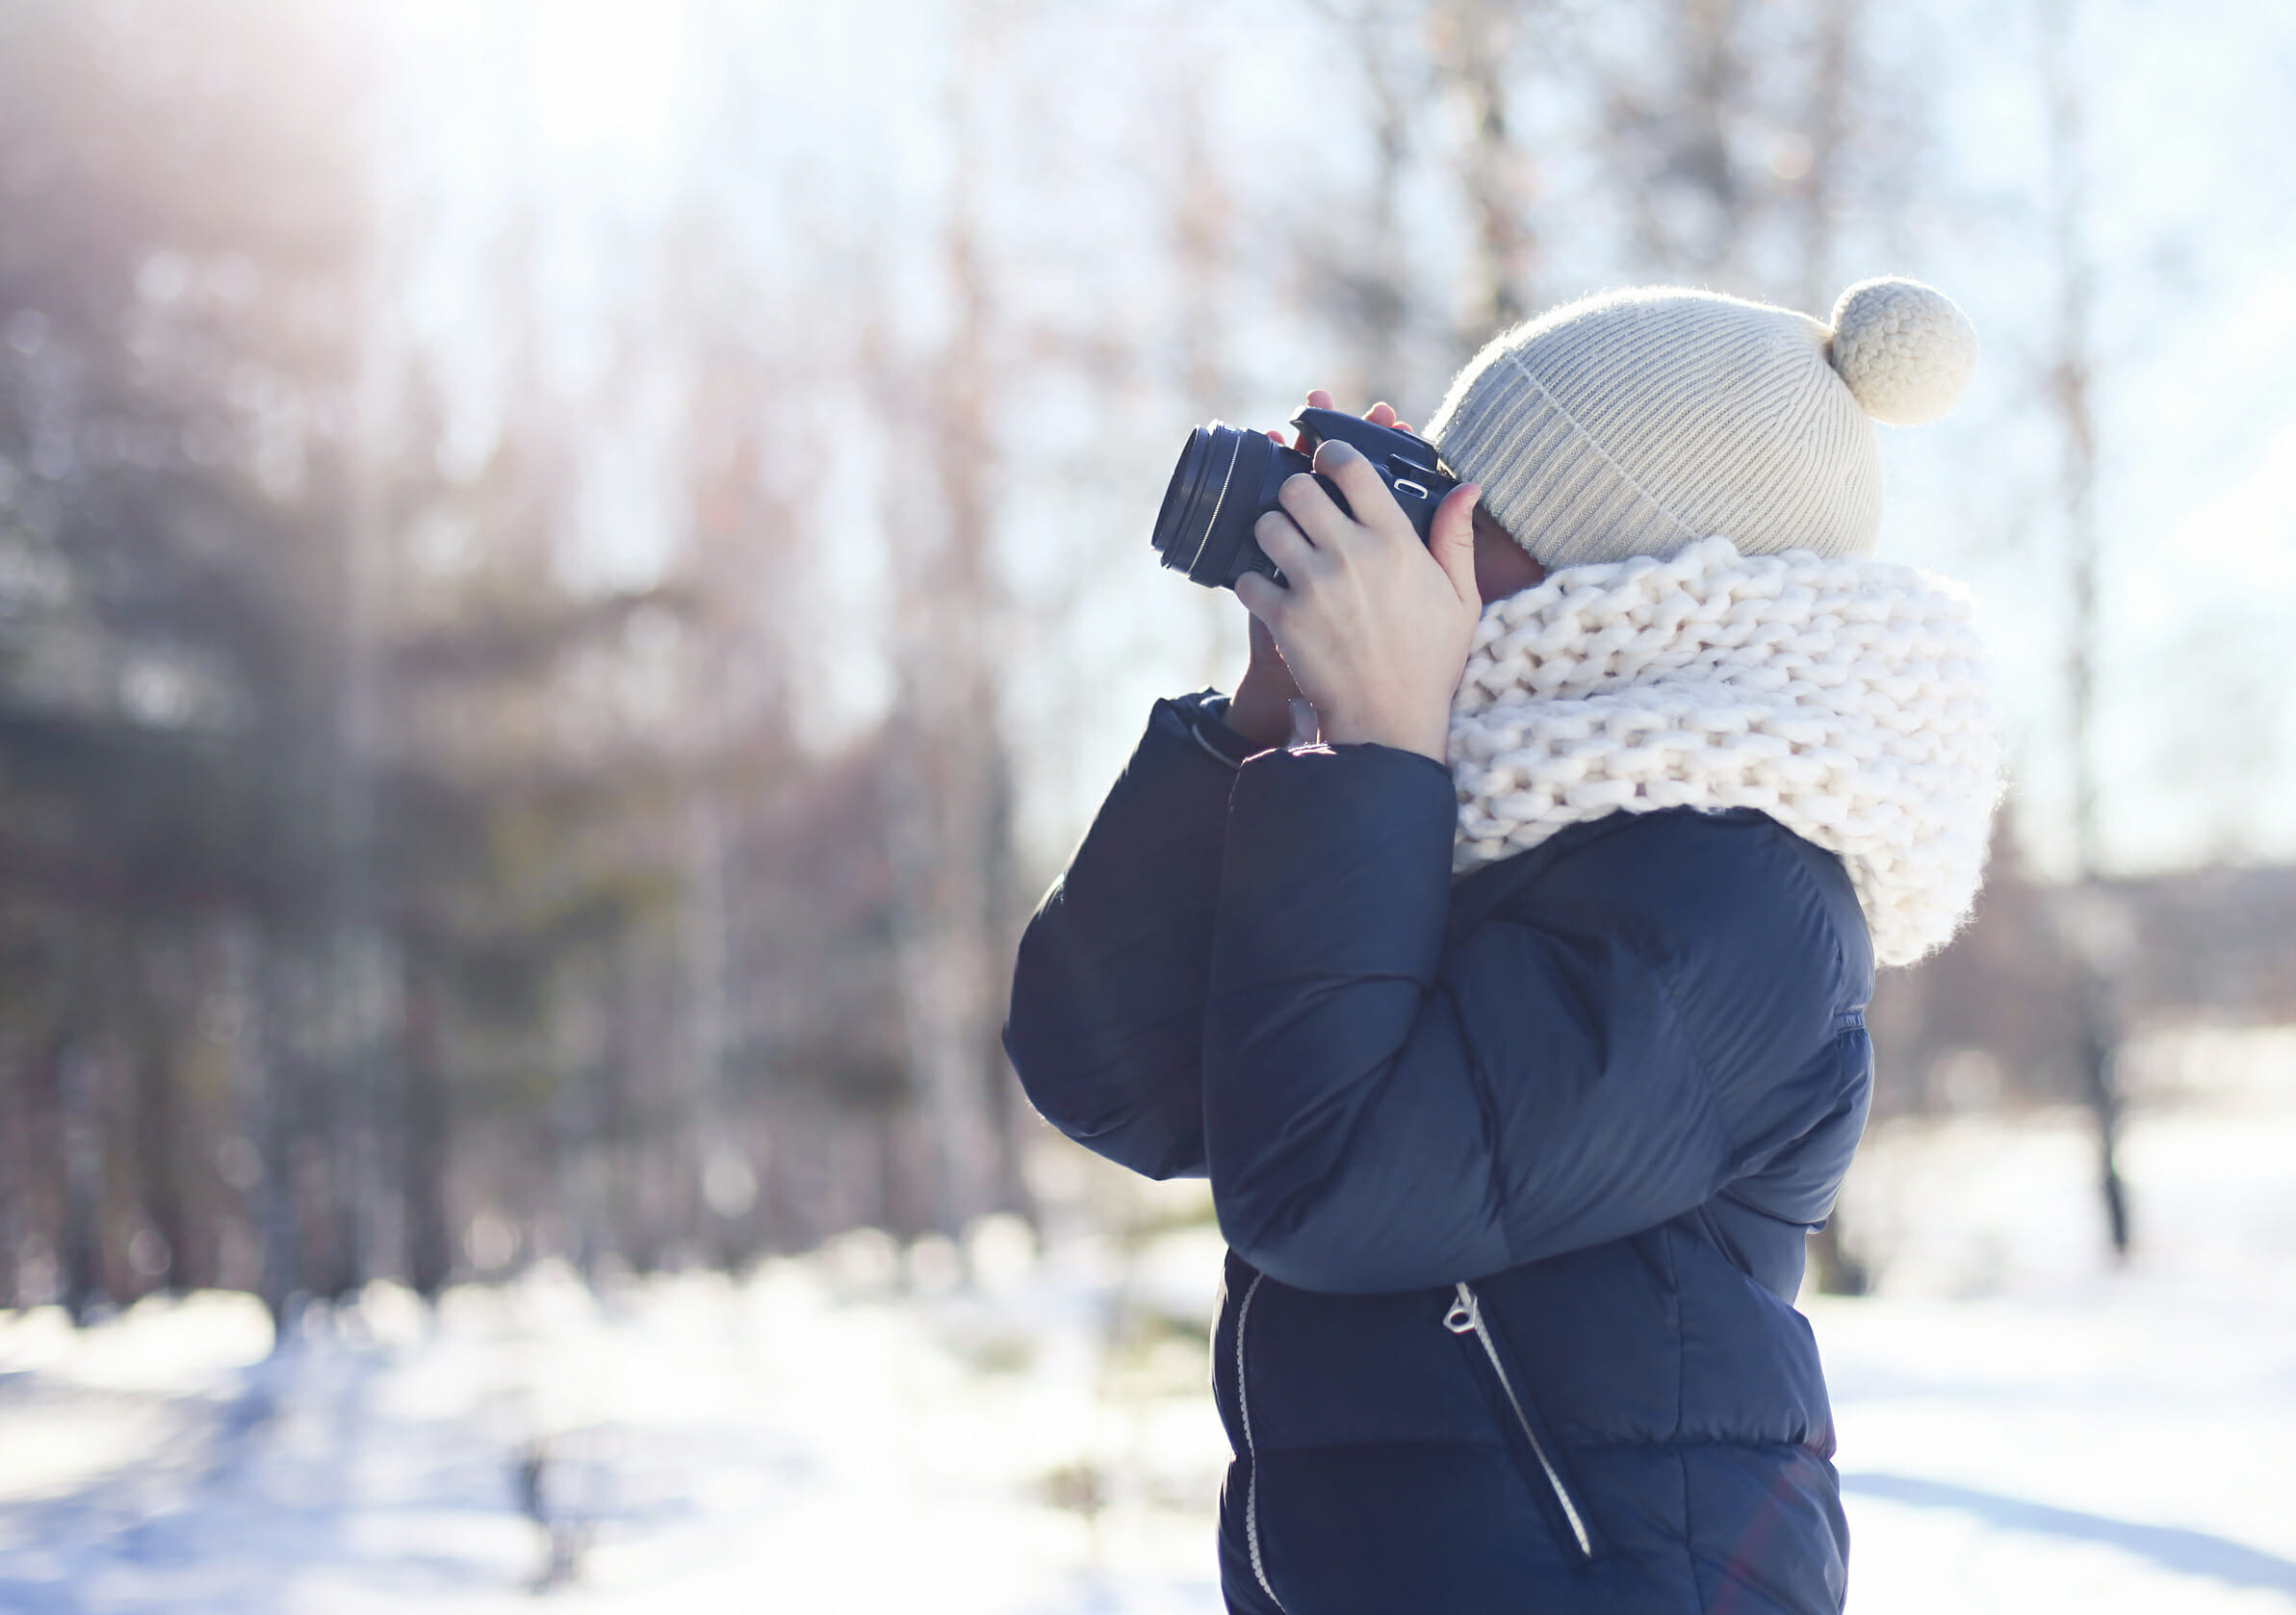 child camera winter photography hat bobble jacket snow cold